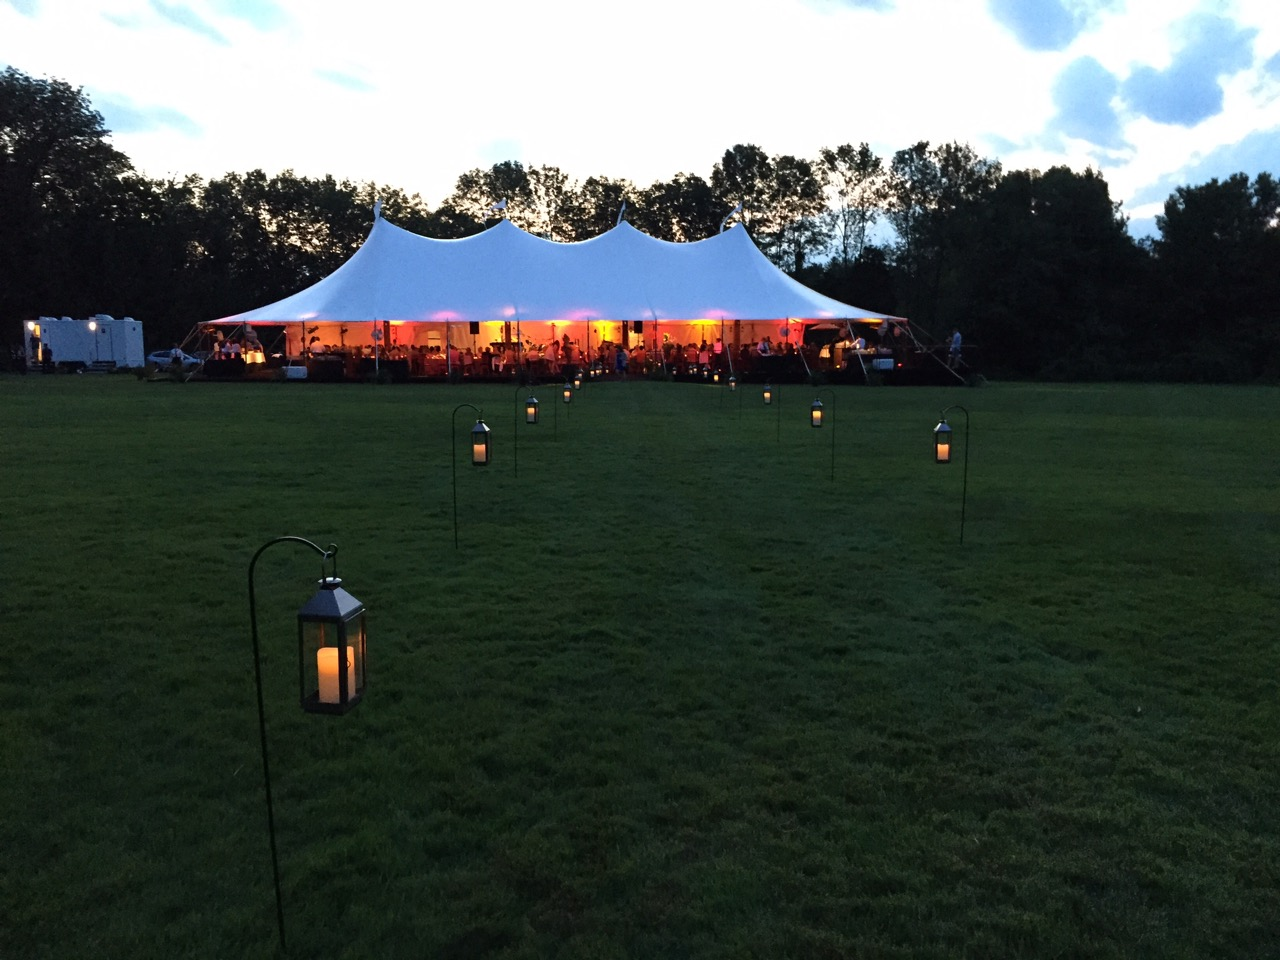 The view from the walkway to the tent entry at dusk, with amber uplighting in the tent